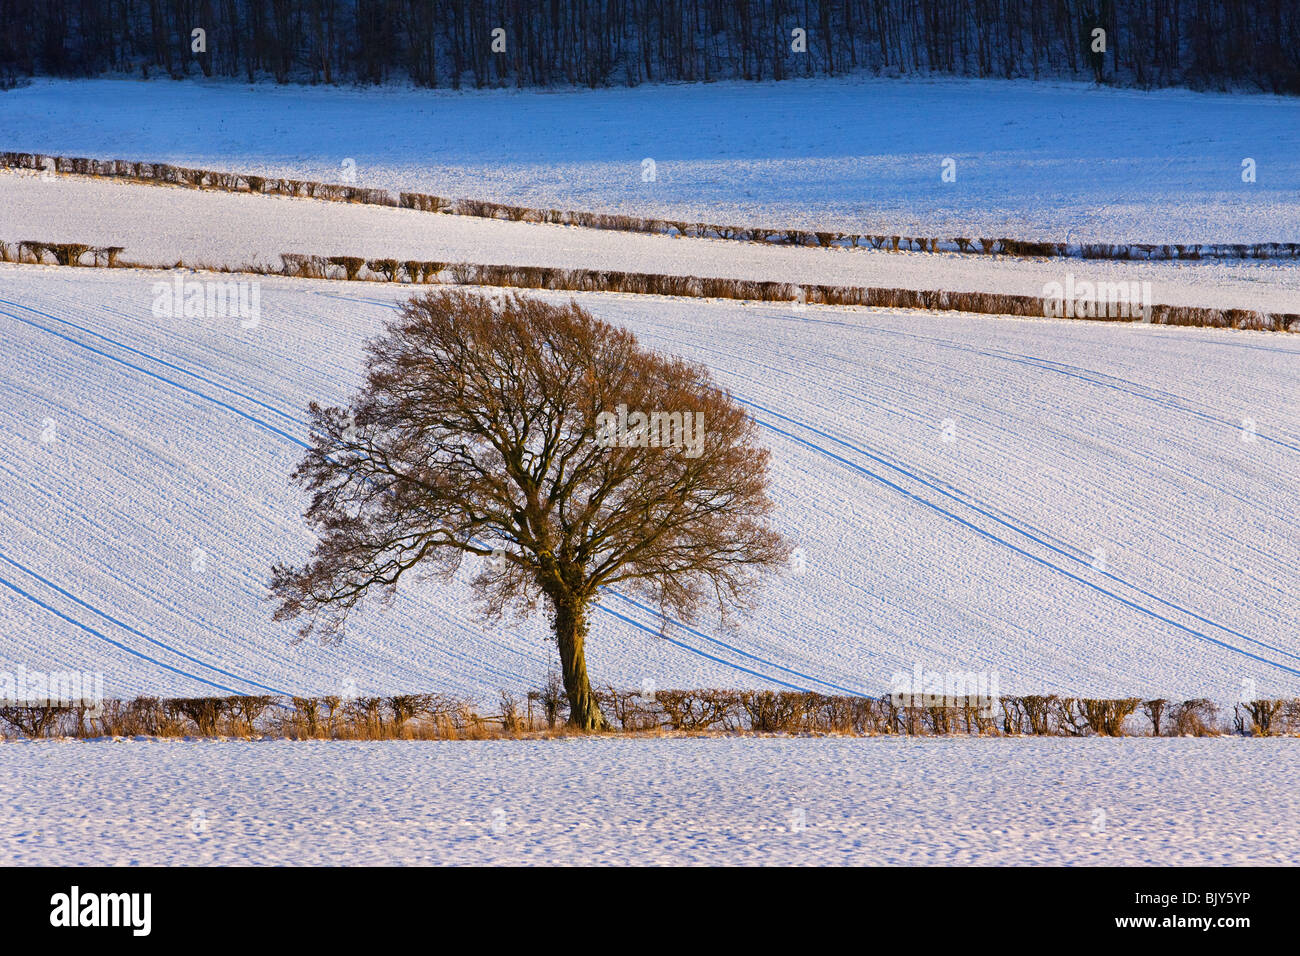 Tree at the Hale winter scene fields Chilterns Buckinghamshire - Stock Image